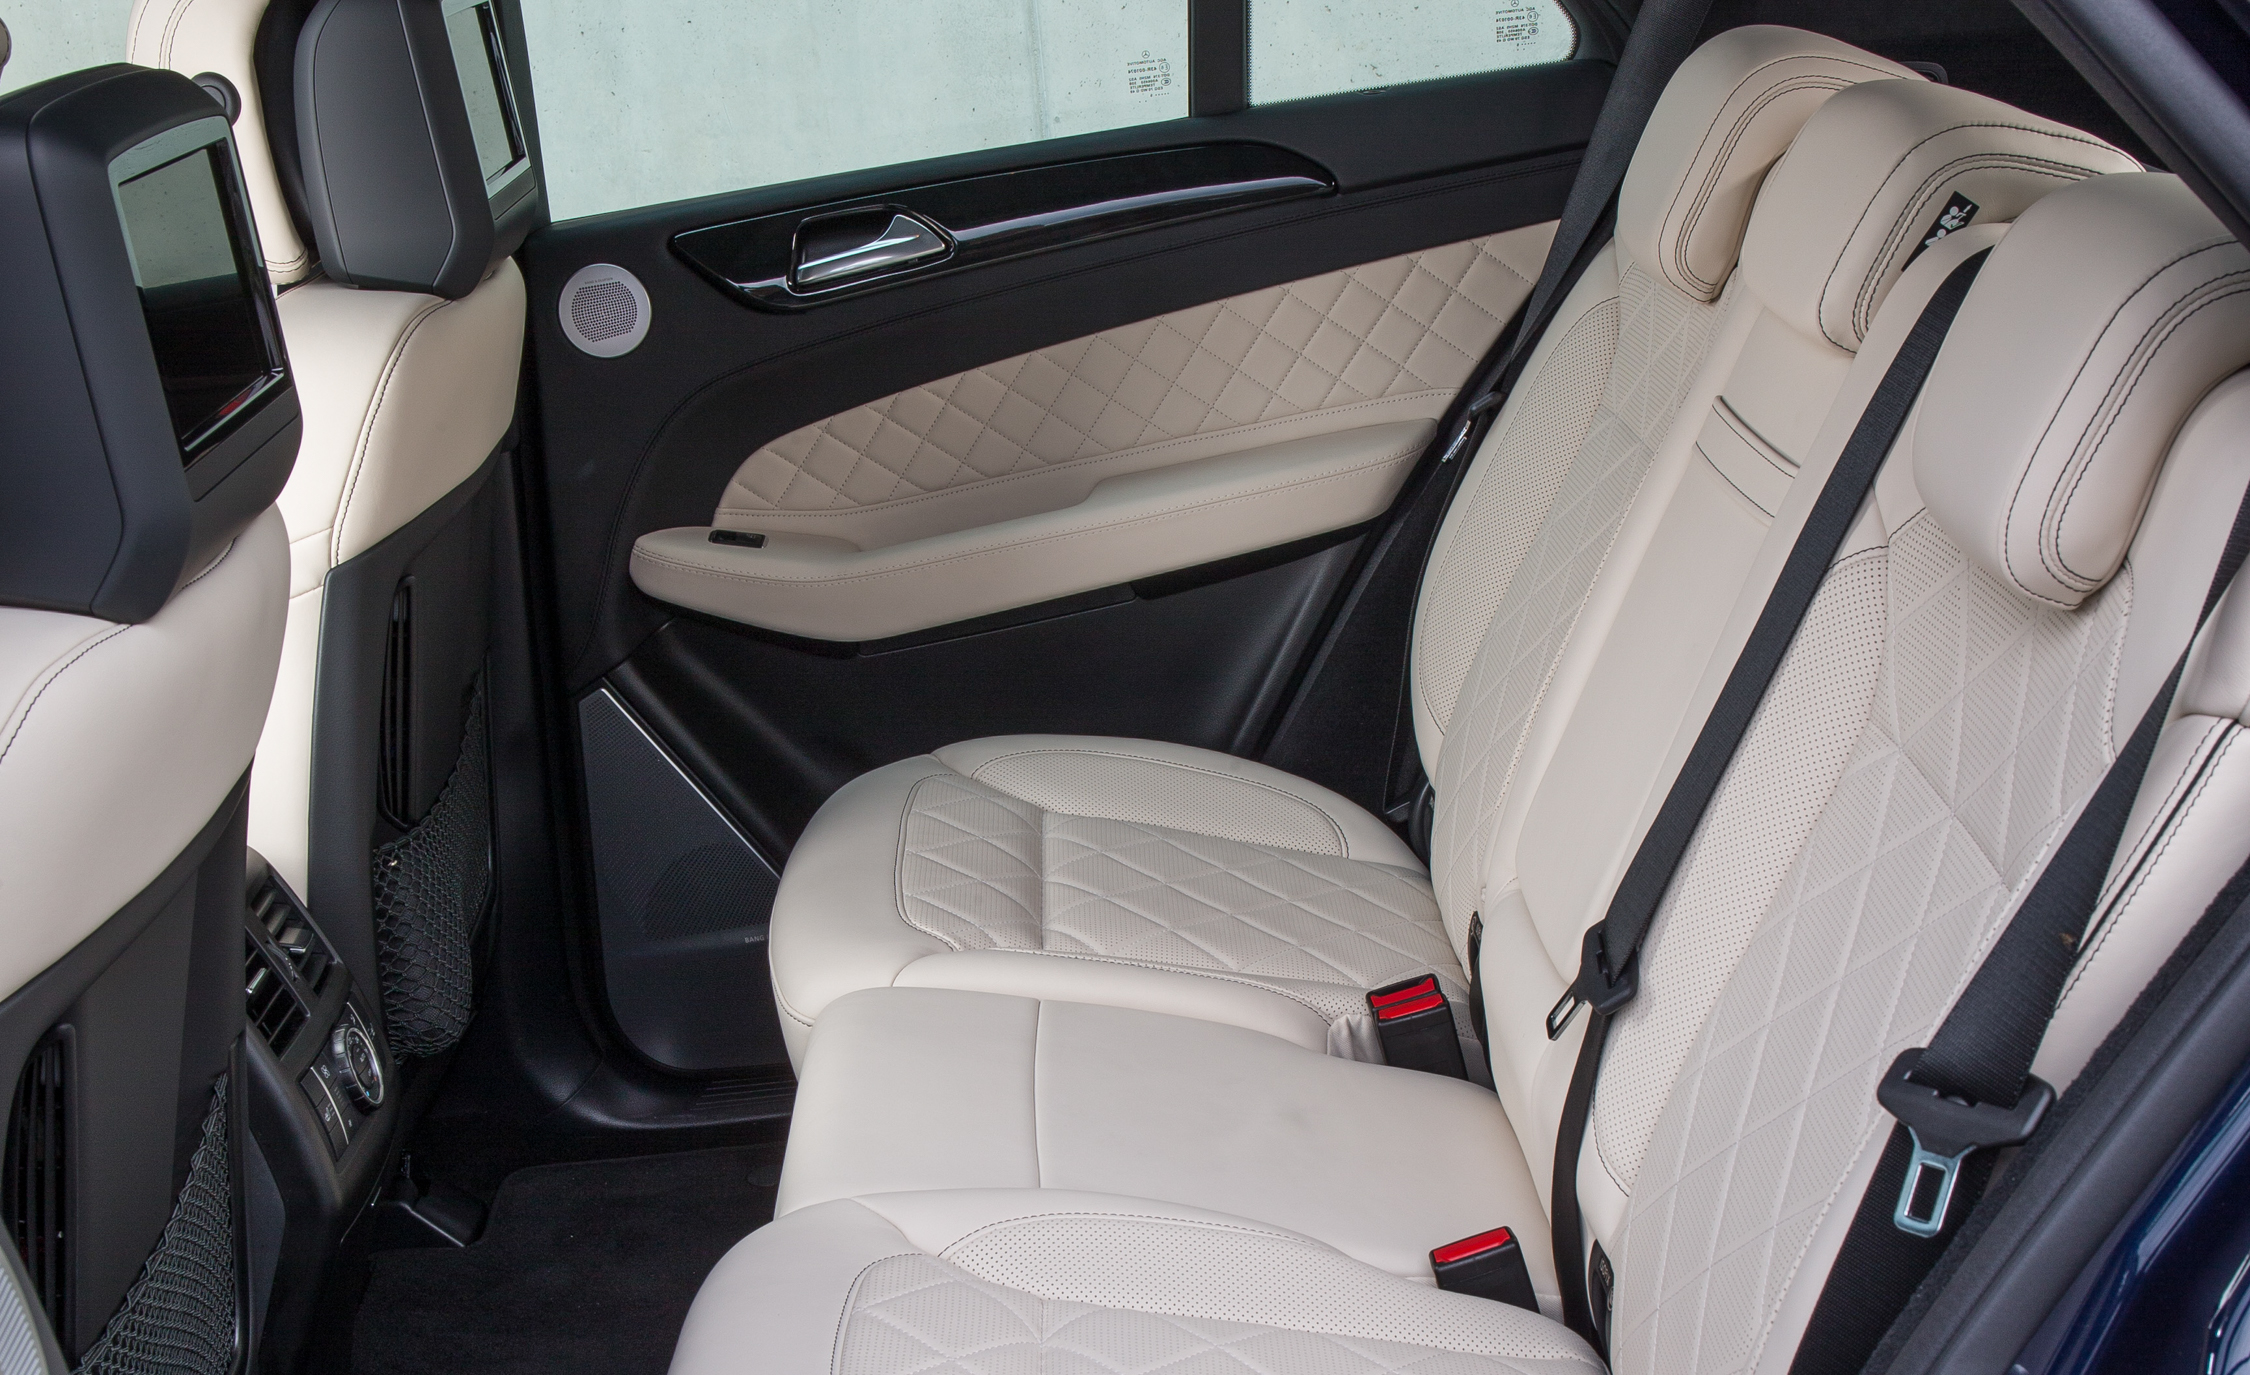 2016 Mercedes-Benz GLE250d 4MATIC Interior Rear Seats